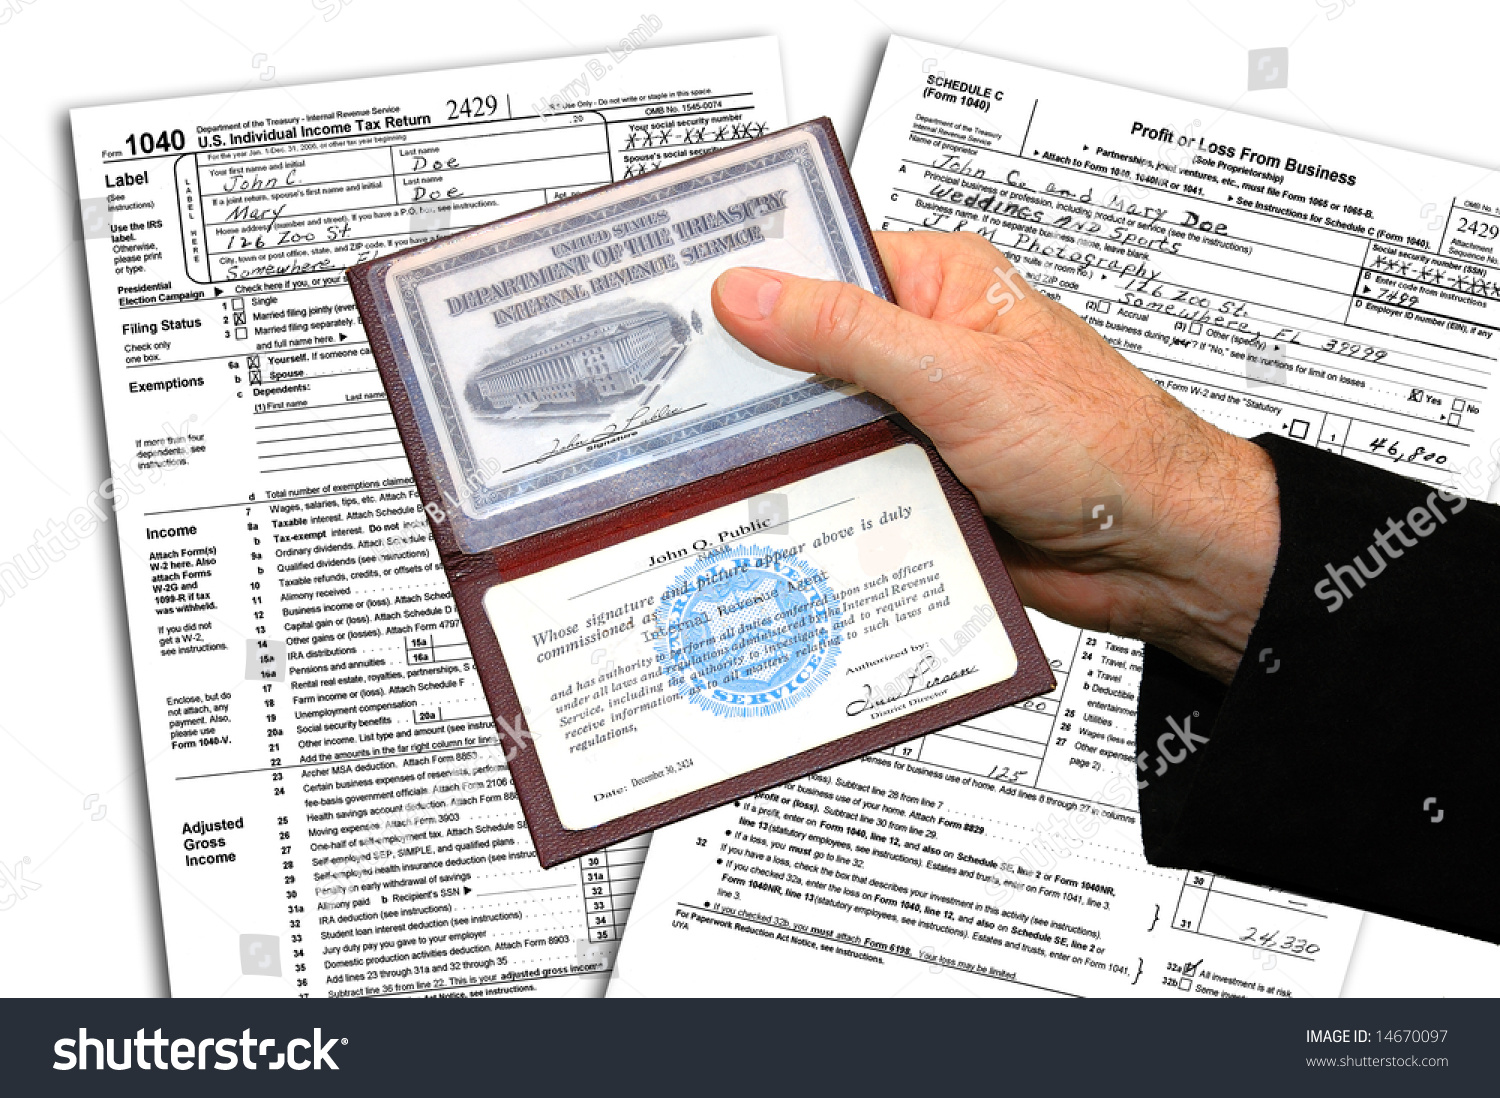 Irs Agent Presenting His Credentials Before Initiating A Federal Income Tax Examination. Stock Photo 14670097 : Shutterstock